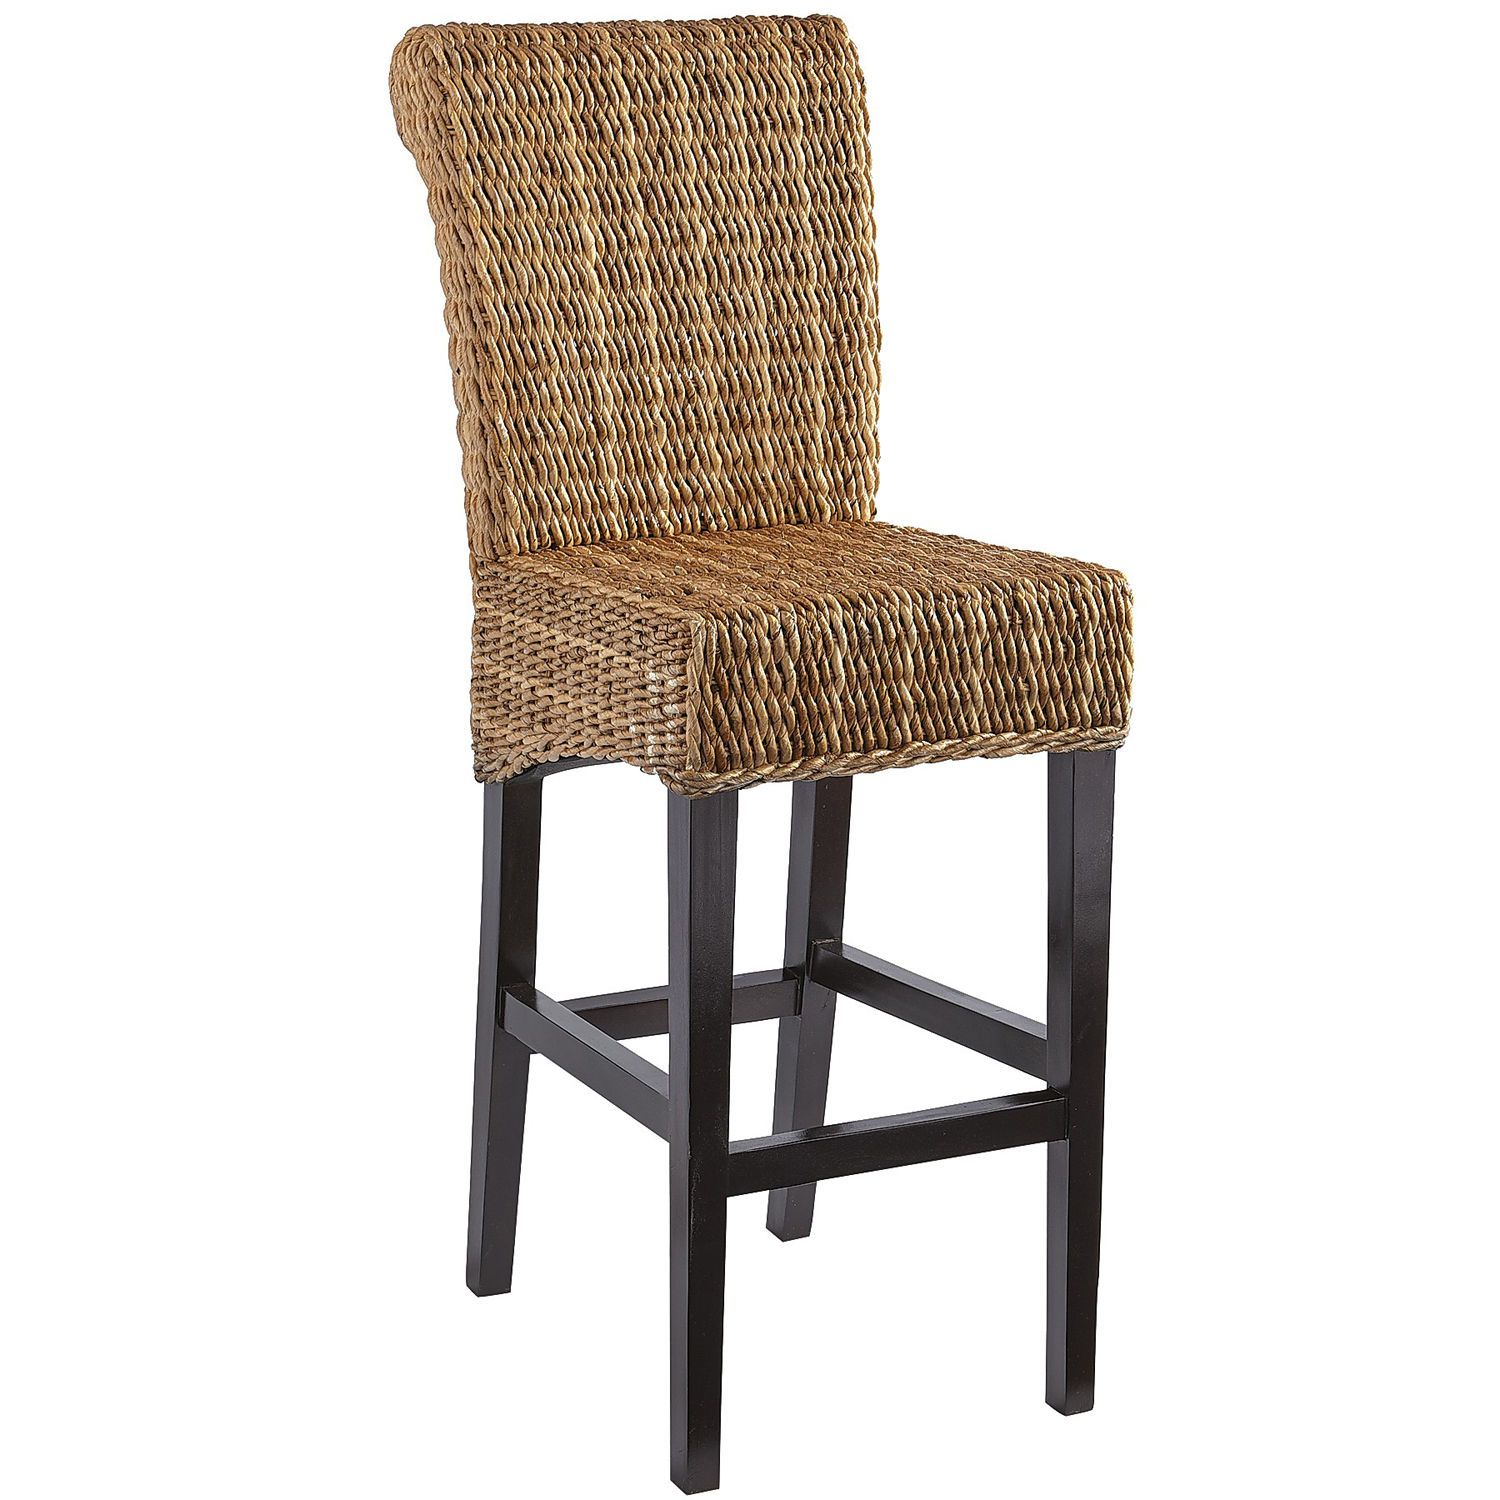 Stupendous Sonita Banana Bar Counter Stools Pier 1 Imports For Ocoug Best Dining Table And Chair Ideas Images Ocougorg